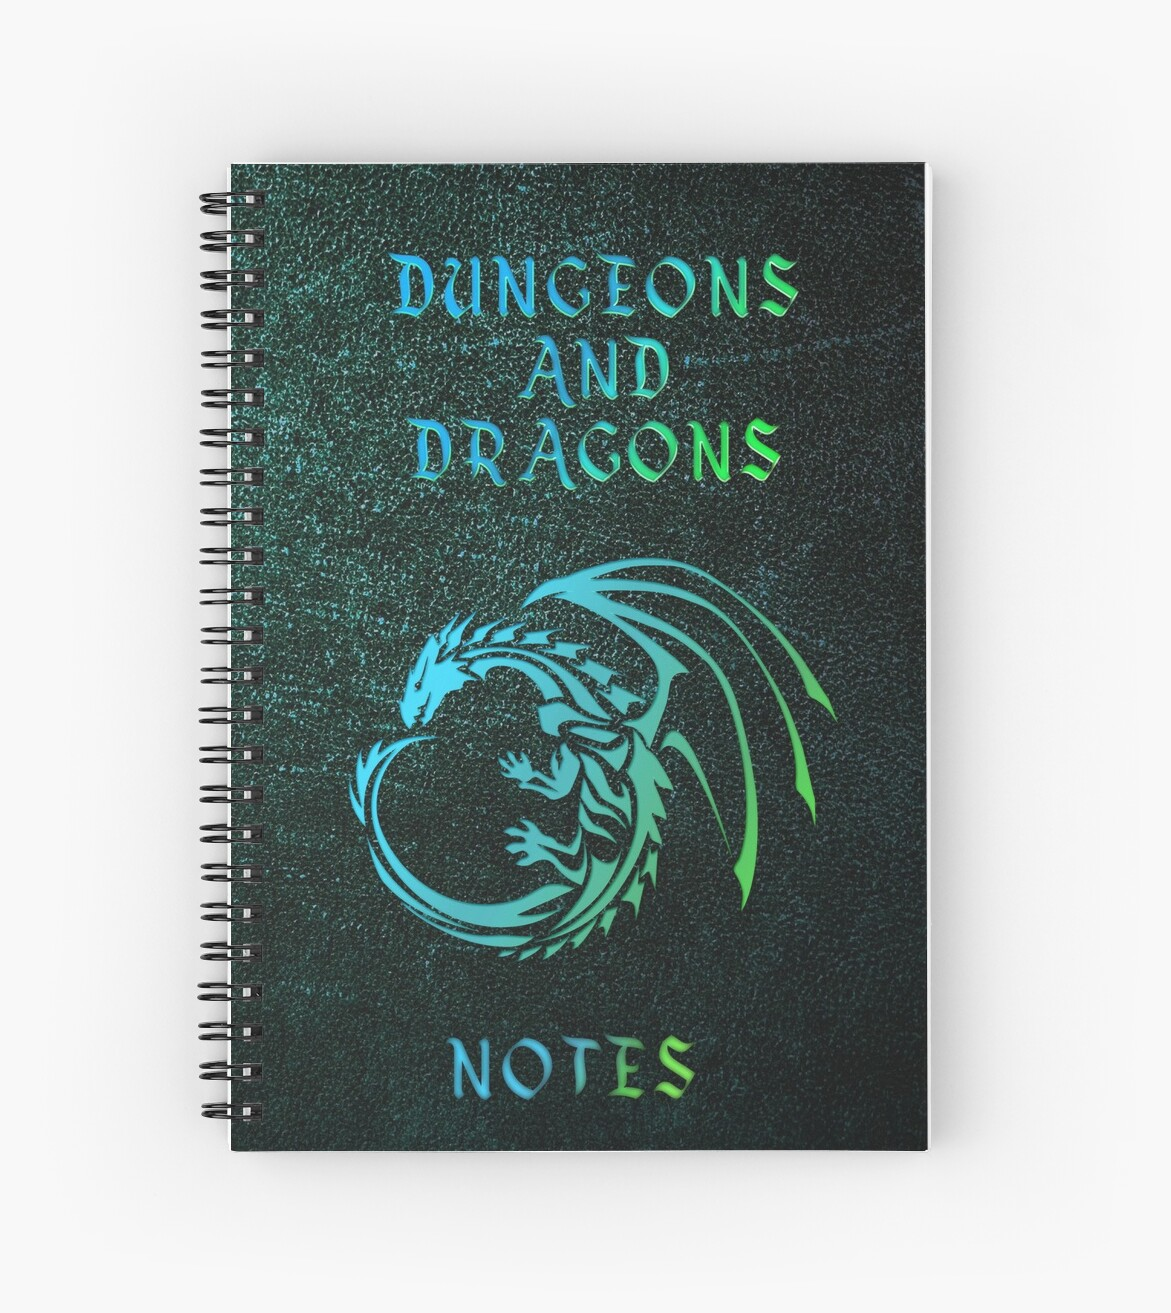 Dungeons & Dragons - Player's Notebook - ZiNG Pop Culture | 1313x1171